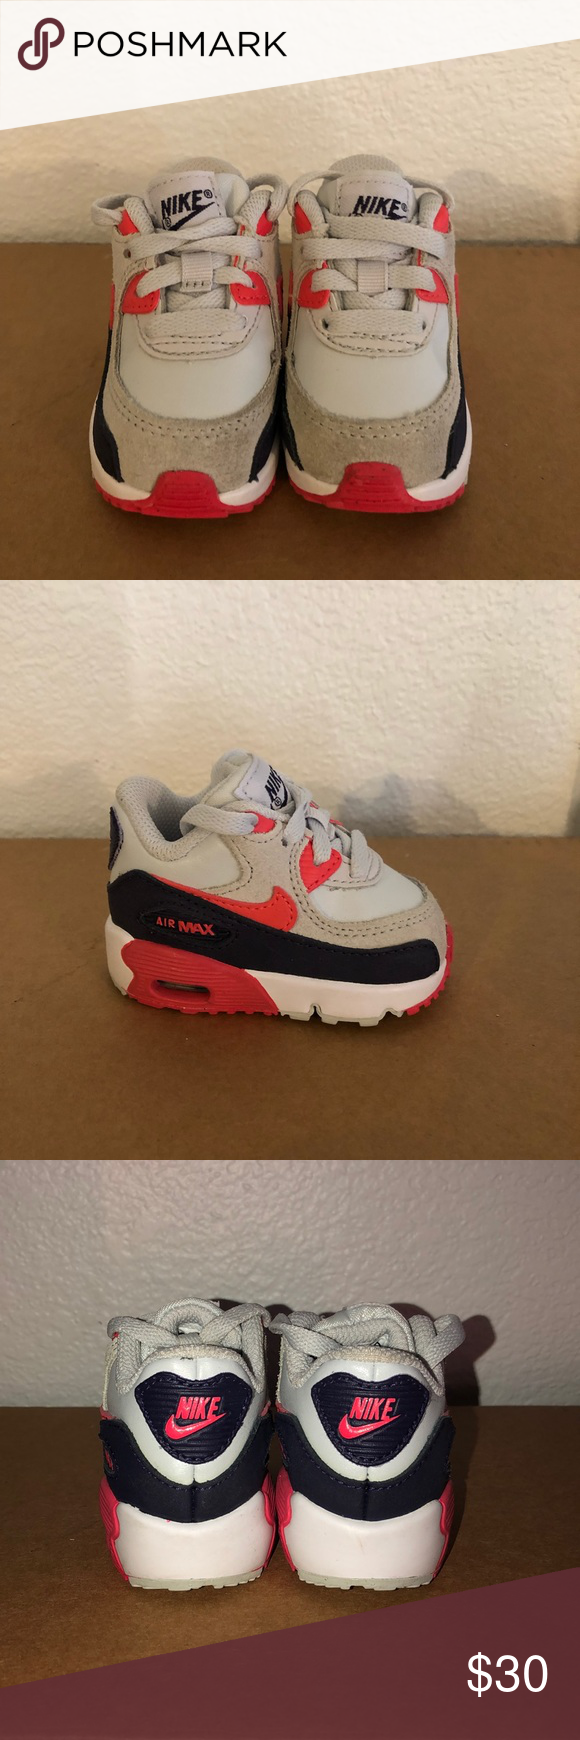 new style c0b0b f4f32 Nike Air Max 90 LTR (TD) Leather Pure platinum  ember glow  purple dynasty     perfect condition. No box Nike Shoes Sneakers